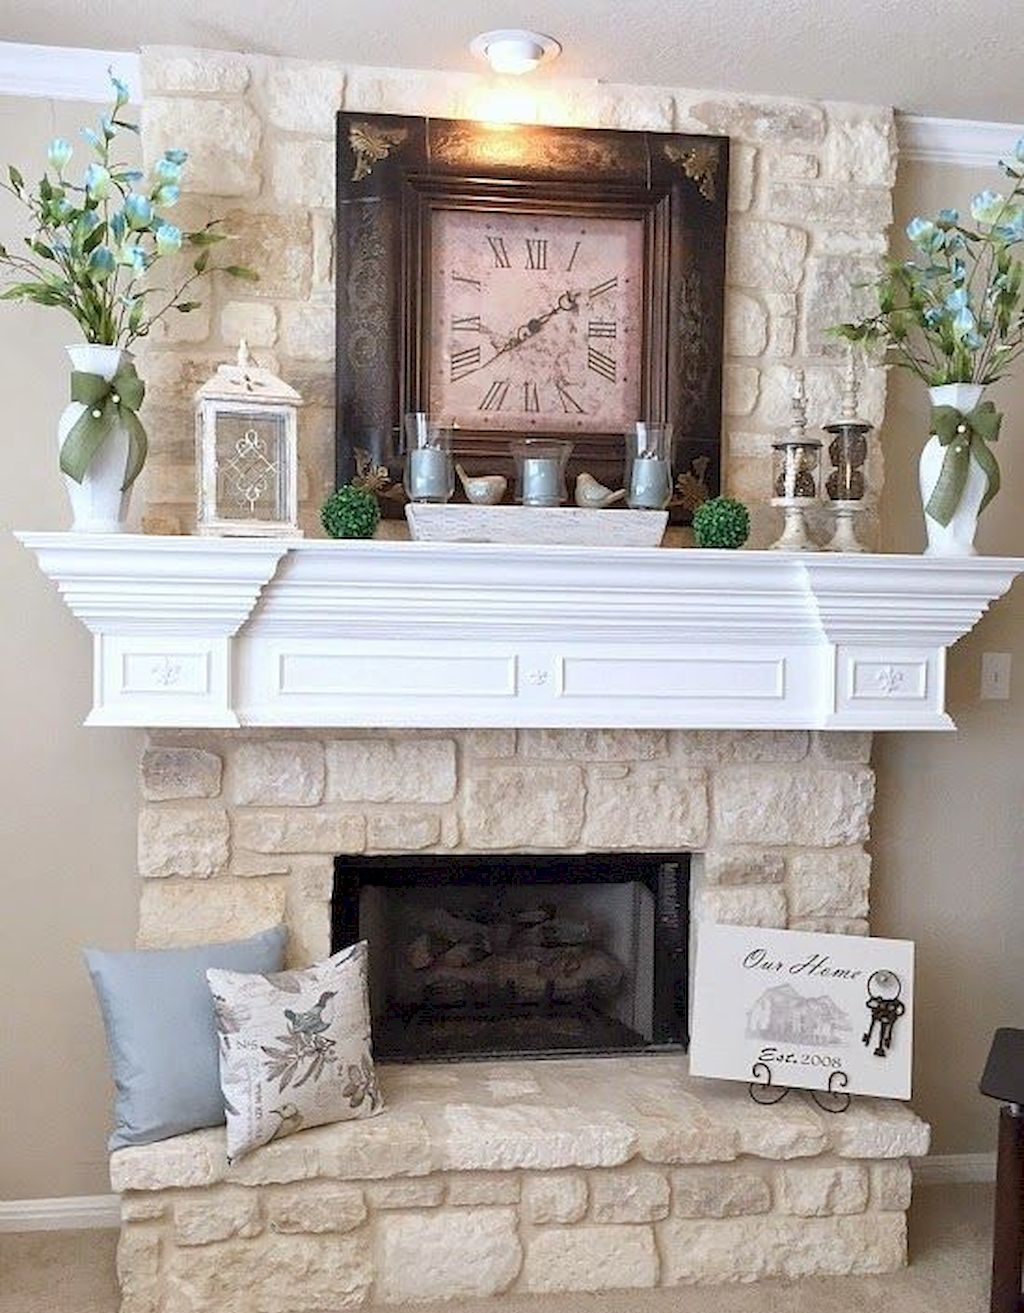 Photo of 55 Awesome Spring Mantel Decorating Ideas – HomeIdeas.co